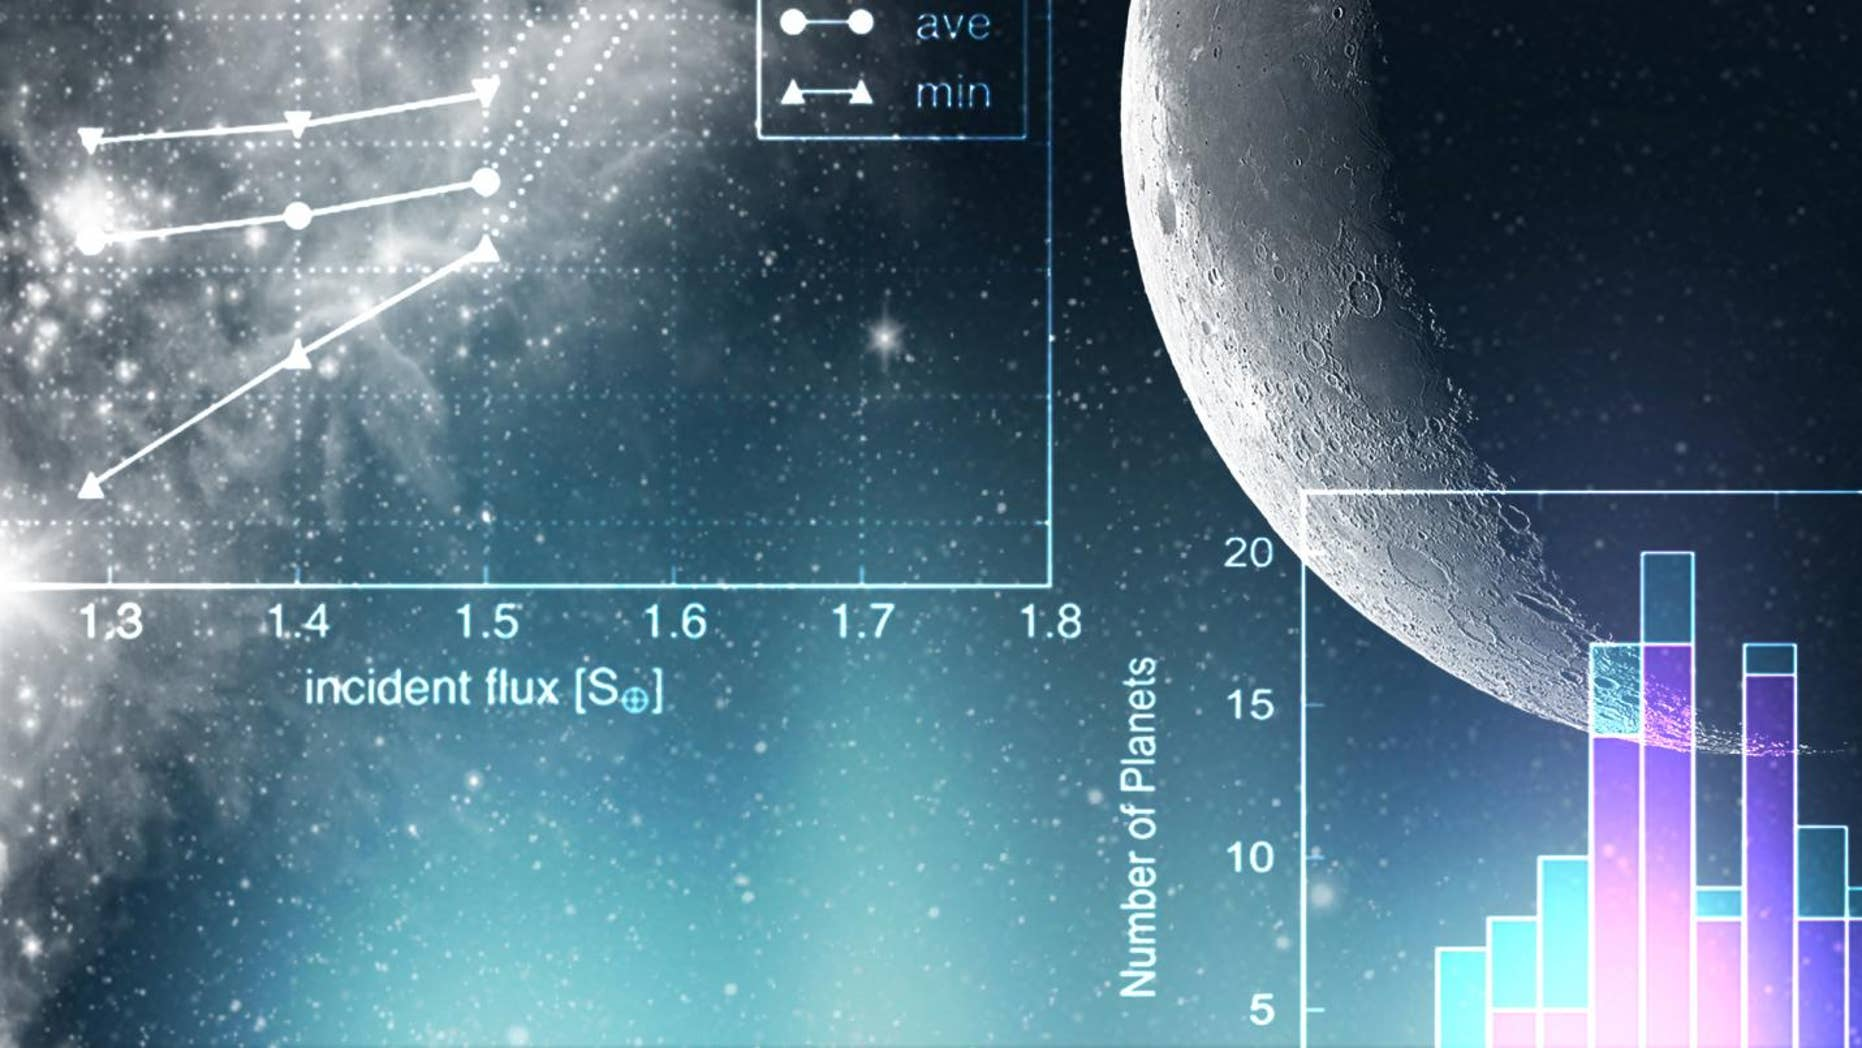 An illustration with exoplanet data in the foreground.